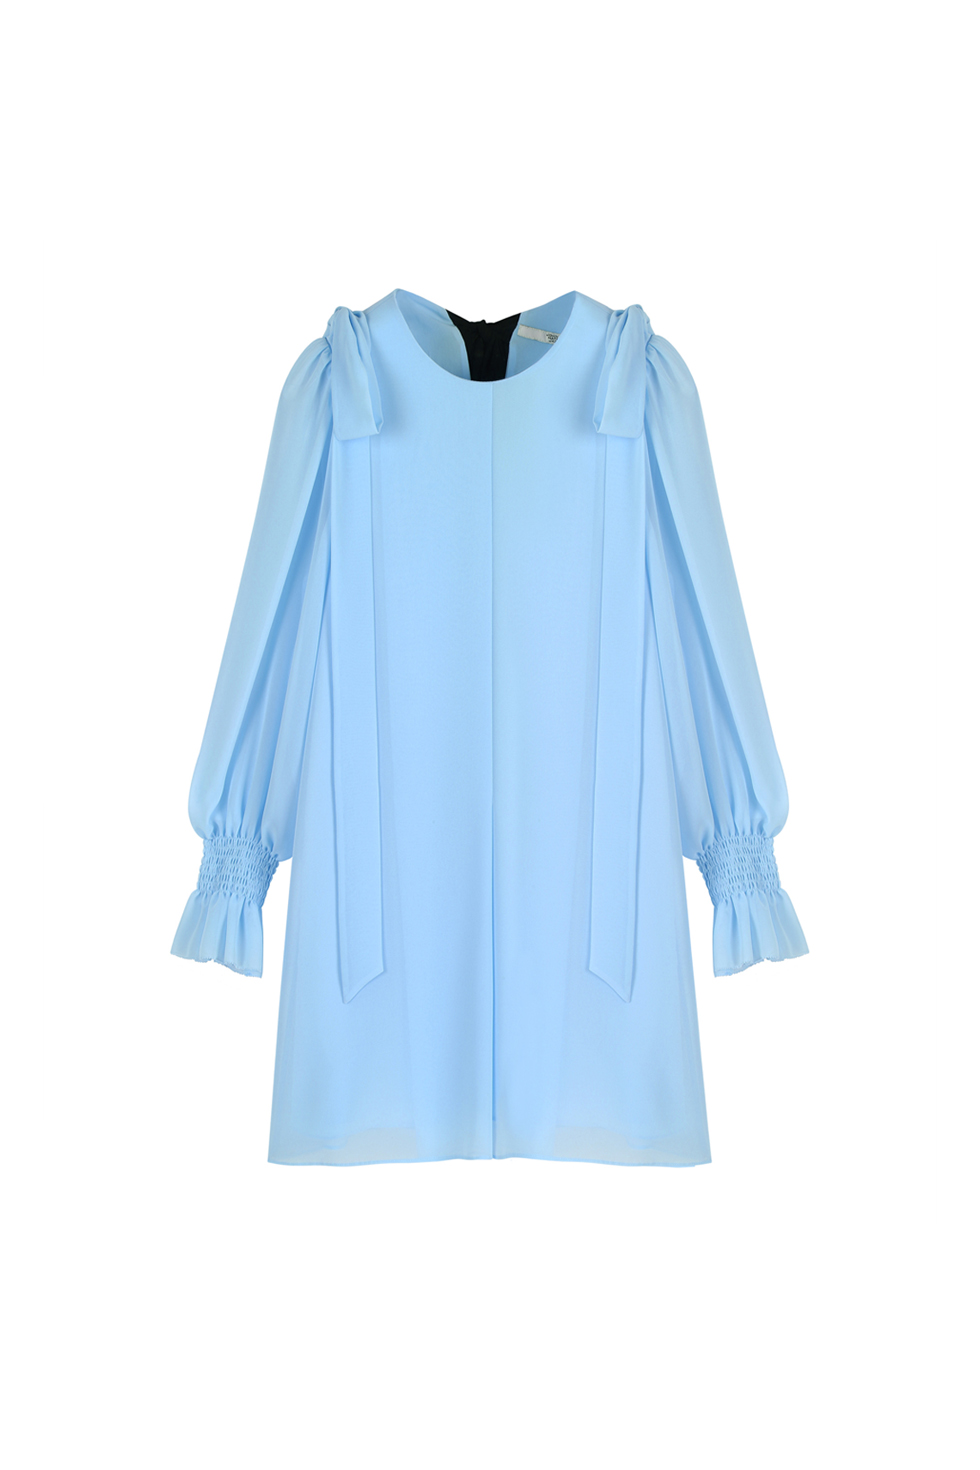 CHIFFON RIBBON DRESS - BLUE